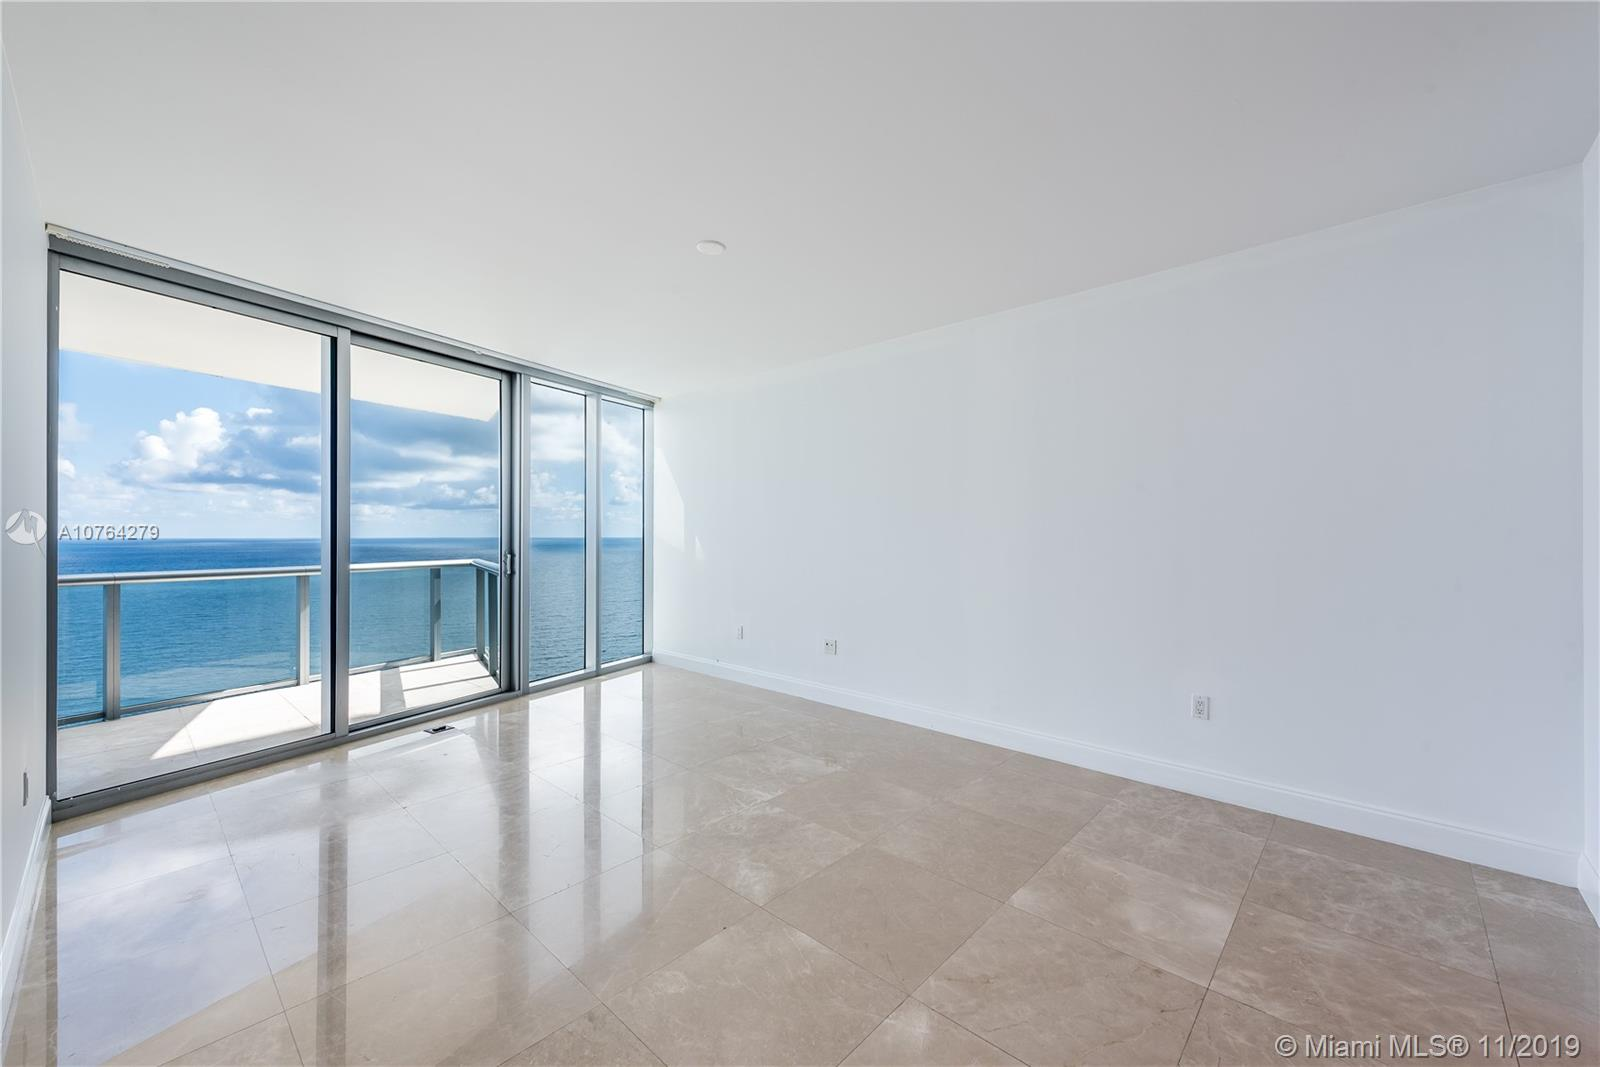 17001 Collins Ave, 3202 - Sunny Isles Beach, Florida